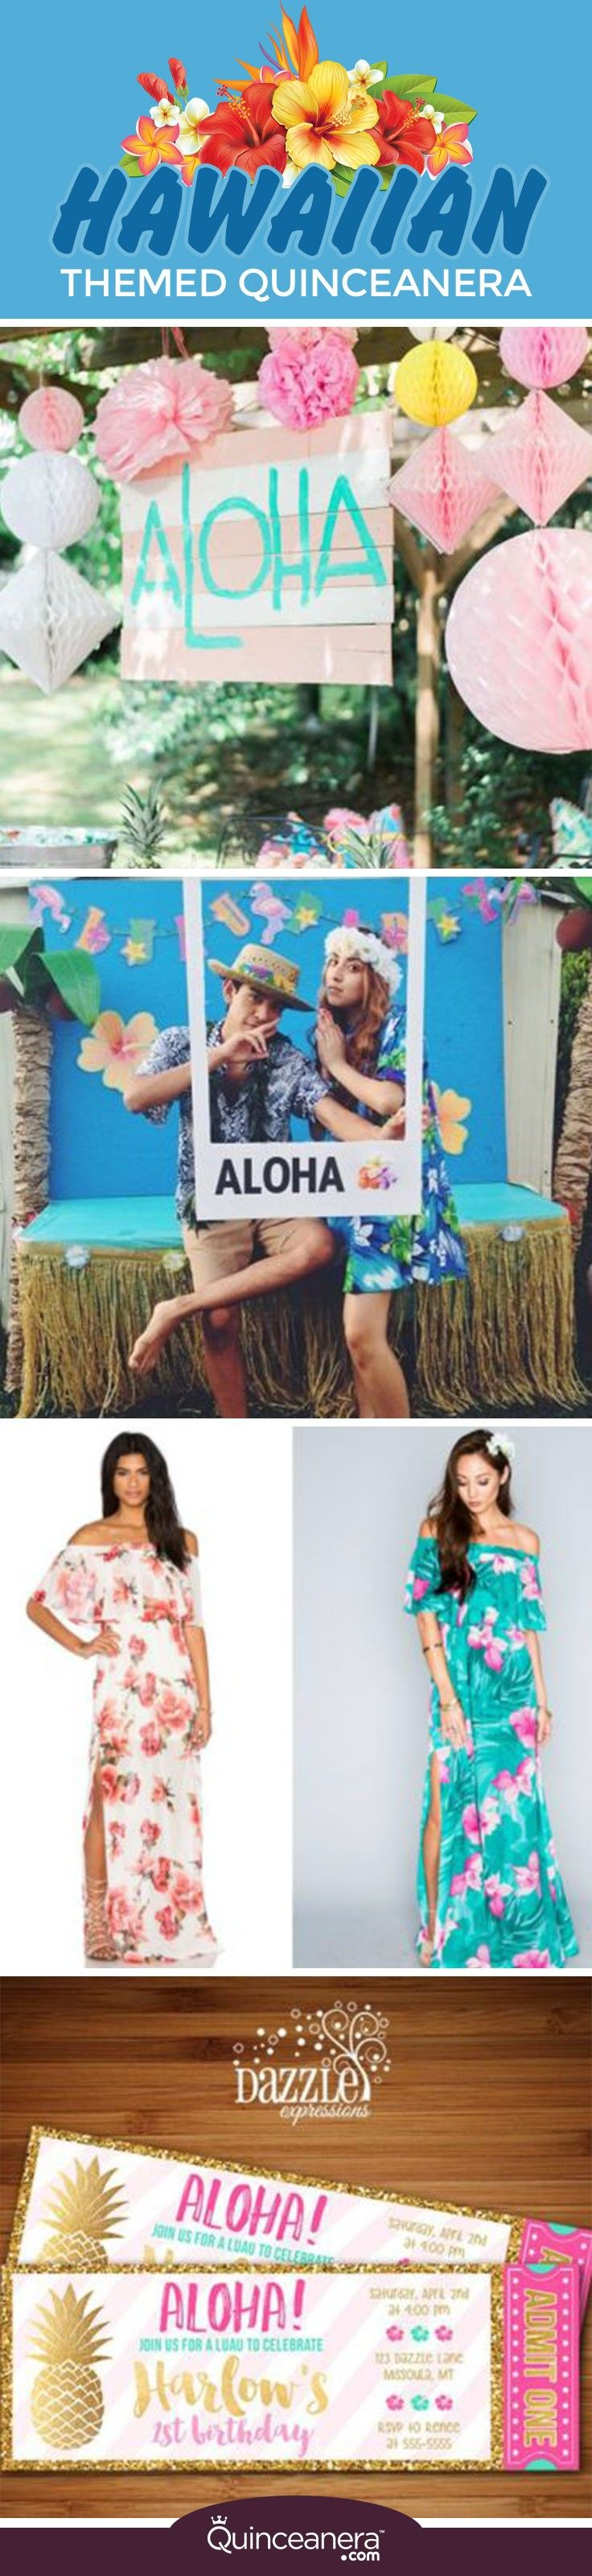 Here are a few ideas for this fun Hawaiian themed quinceañera party: http://www.quinceanera.com/decorations-themes/a-hawaiian-themed-quinceanera/